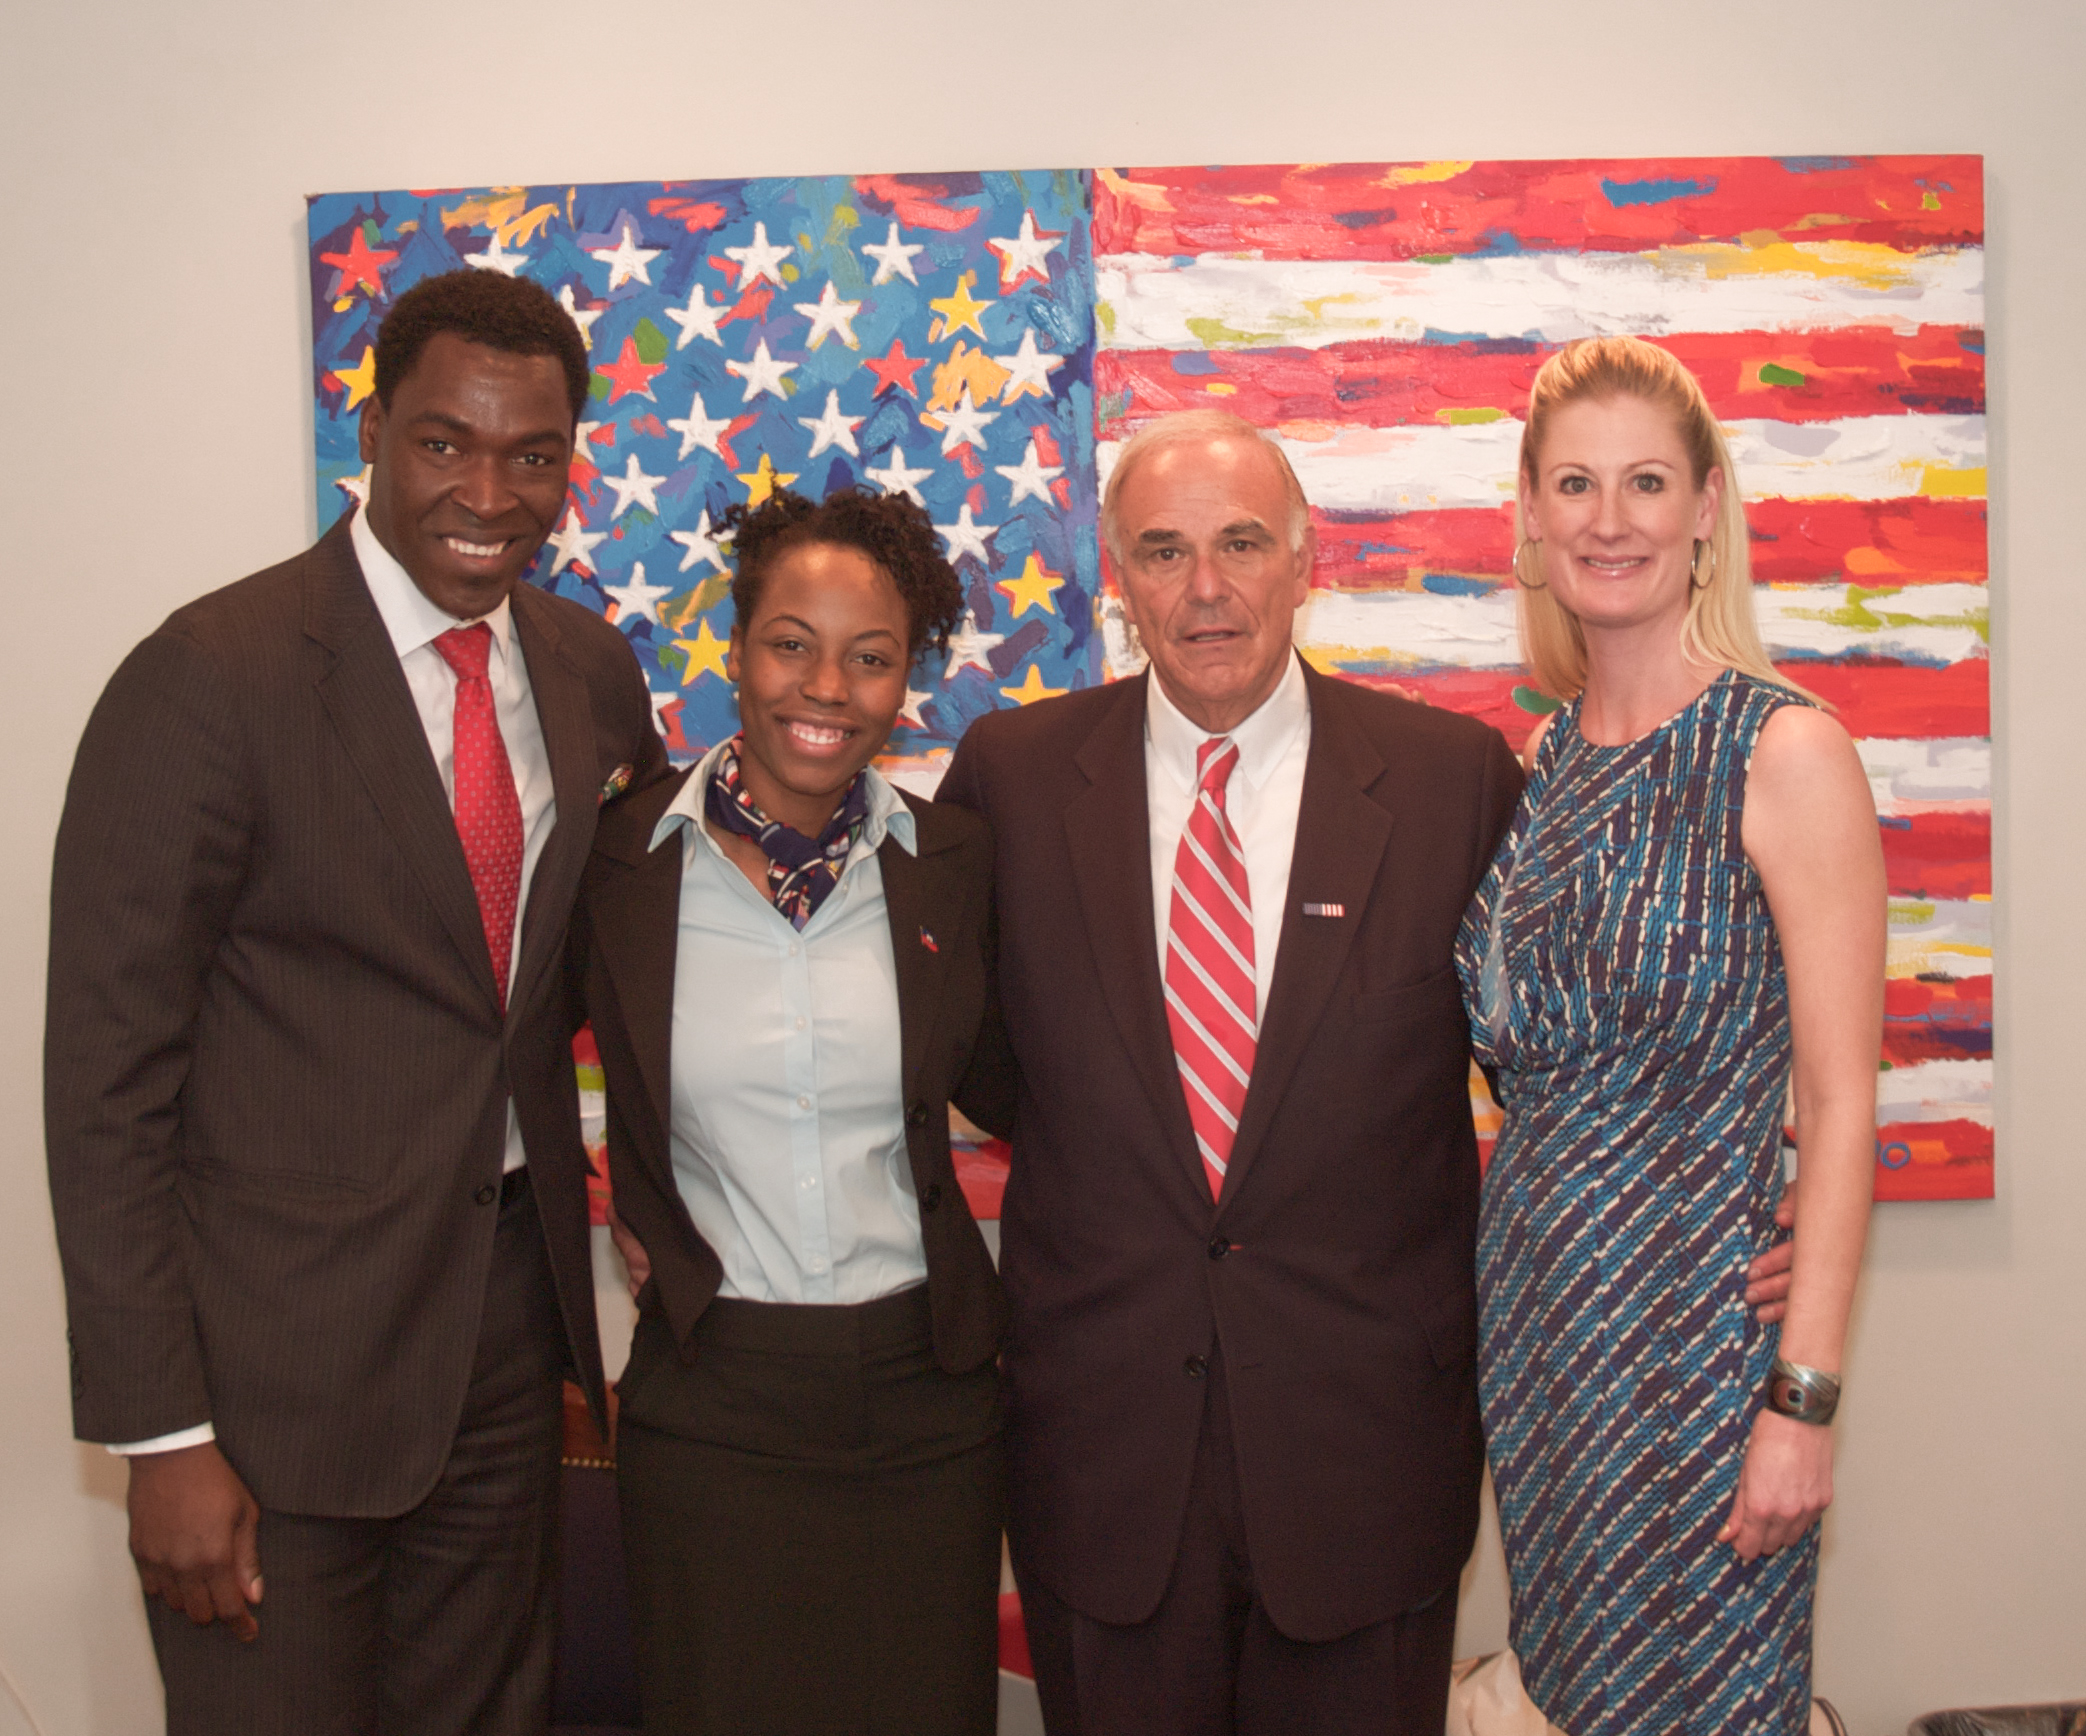 Ulysse Toussaint, Junie J. Holland, Gov. Ed Rendell & Chief of Staff, Dr. Kirstin Snow In Philadelphia Office in Februrary 2010